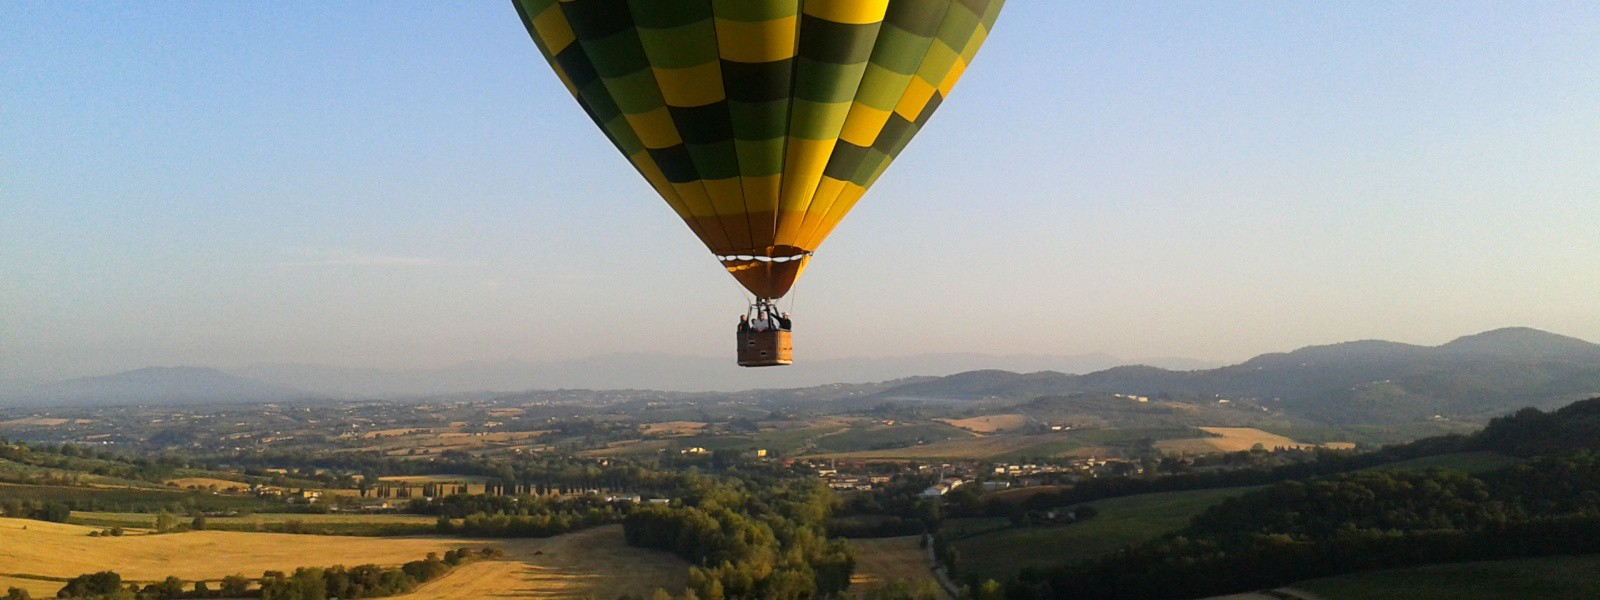 balloon-ride-in-tuscany-over-pesa-valley-1600x600.jpg